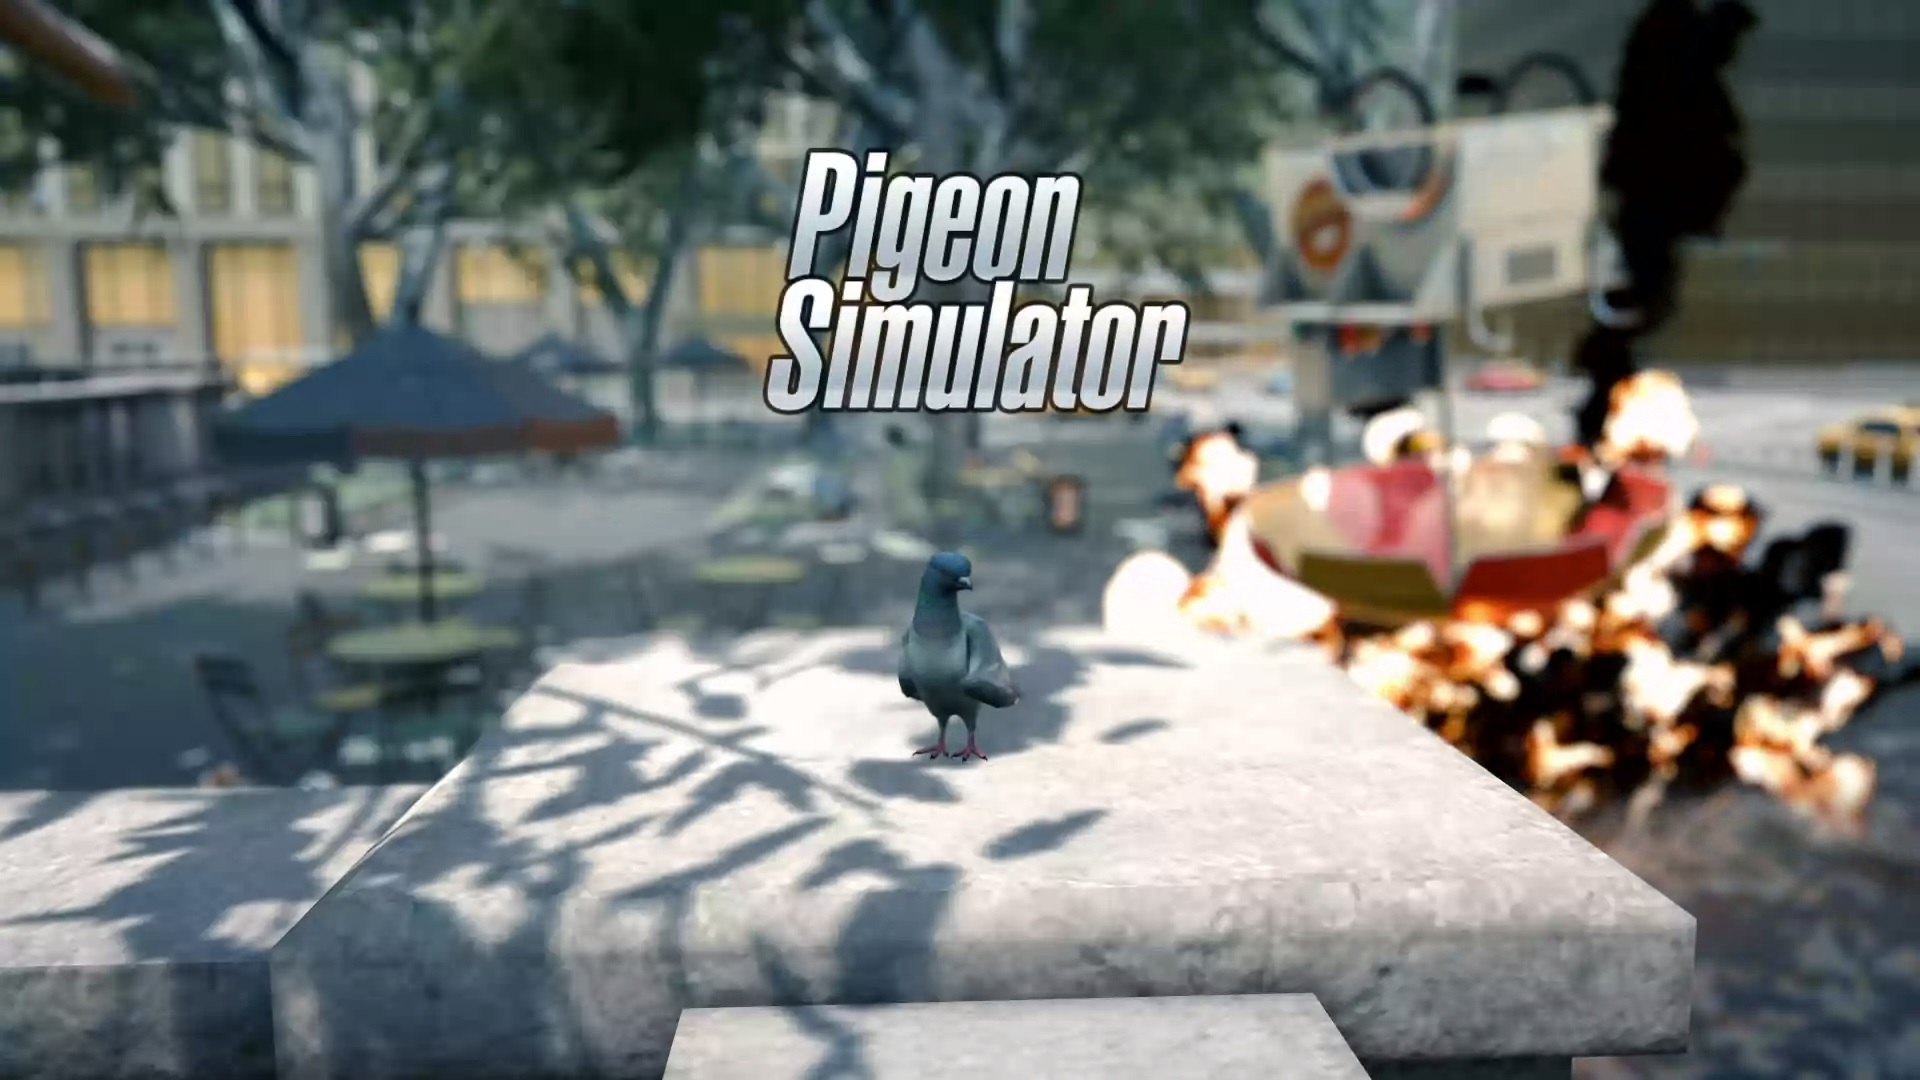 Pigeon Simulator Looks Dove-ly - GameSpace com